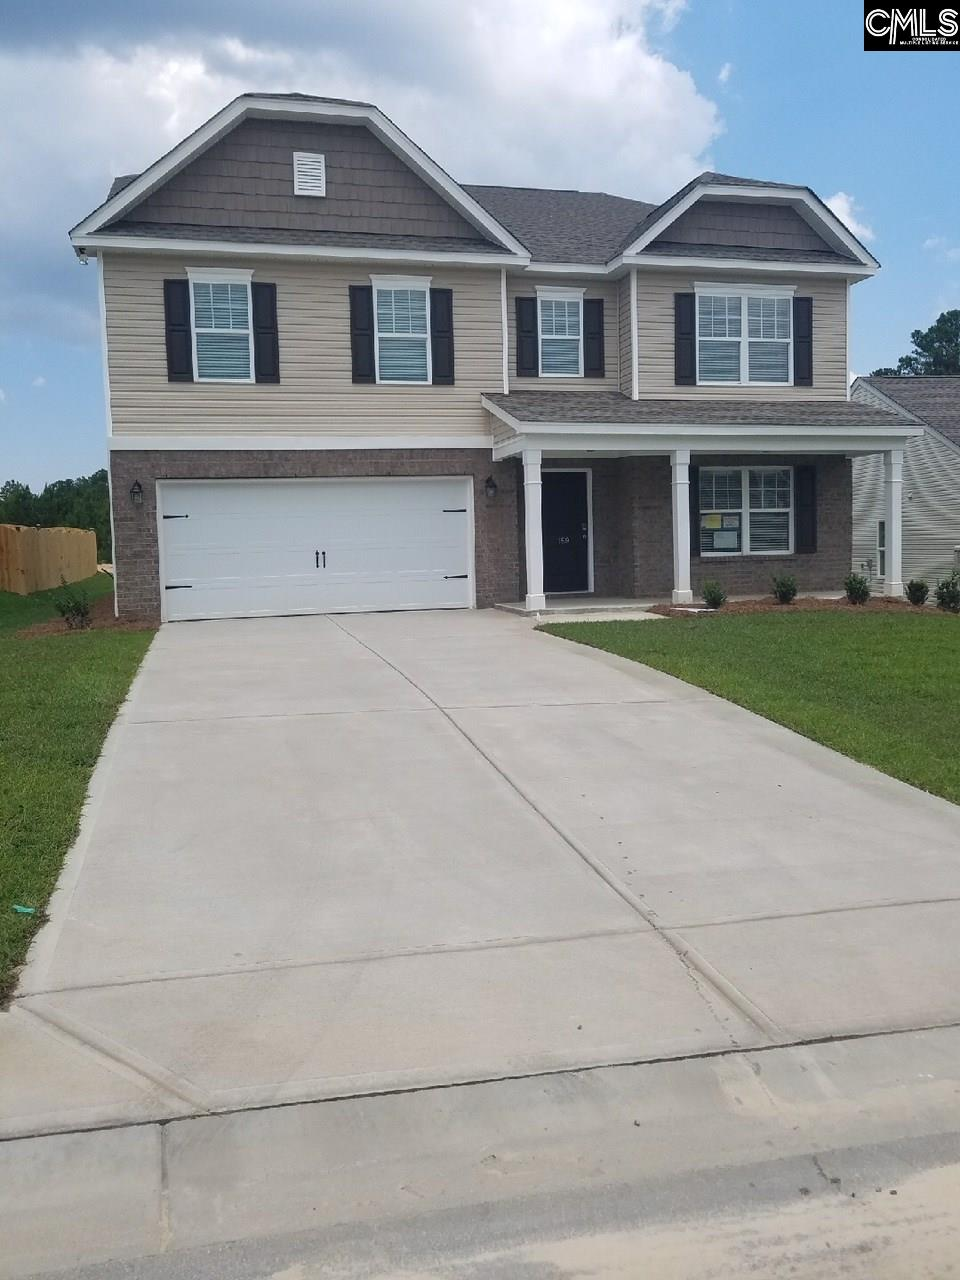 159  Turnfield #lot 64 West Columbia, SC 29170